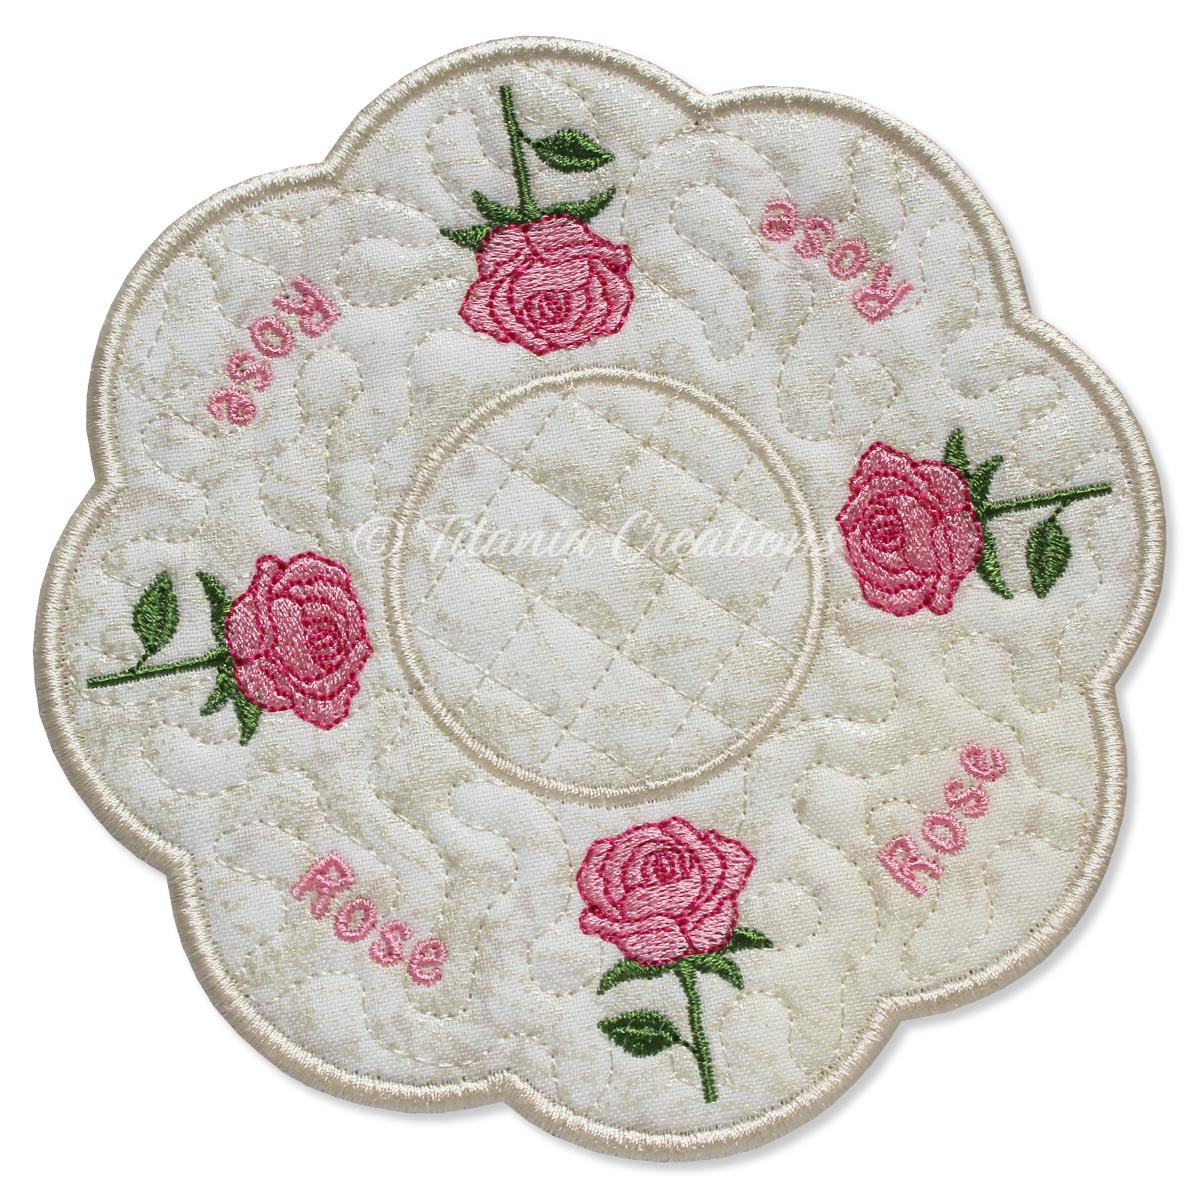 ITH Rose Flower for June Candle Mat 5x5 6x6 7x7 8x8